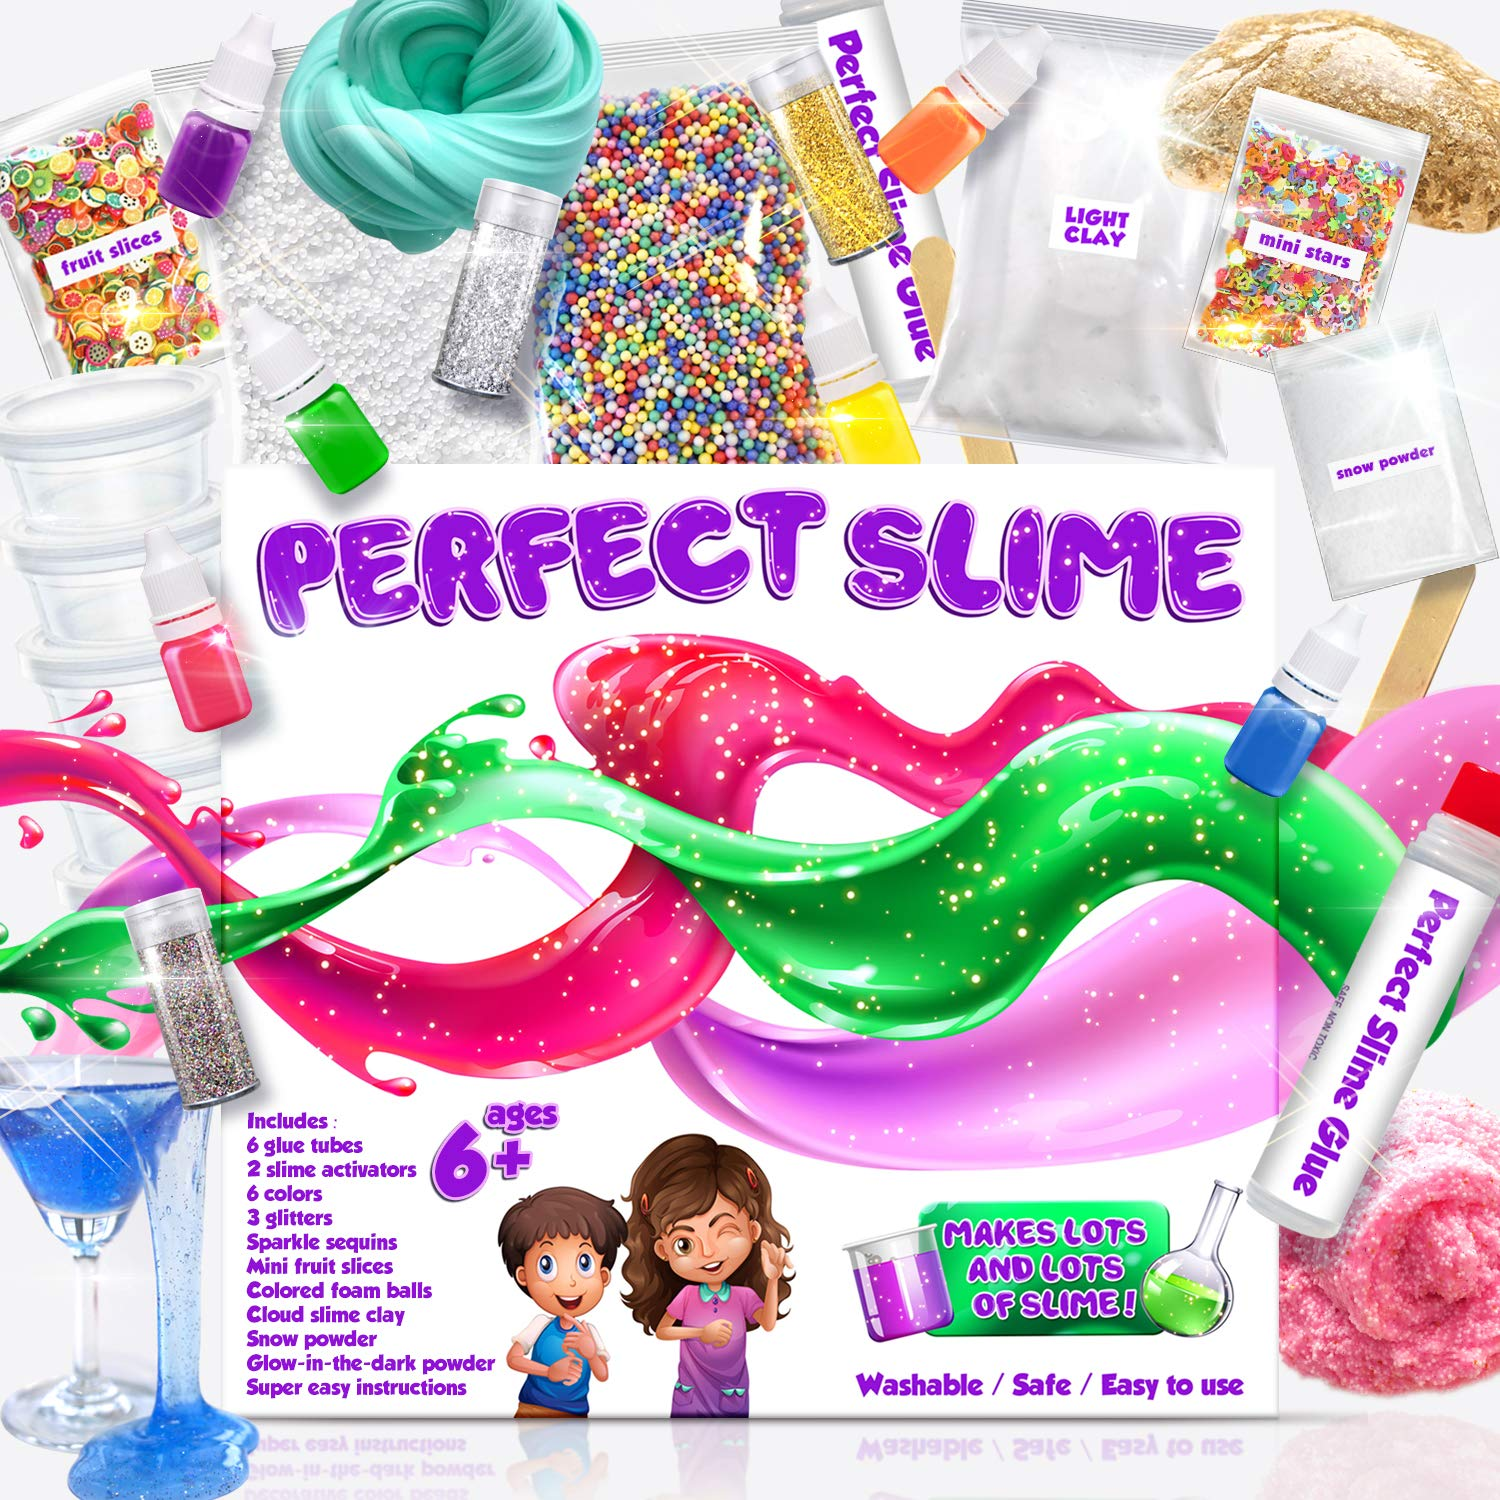 PERFECT SLIME for Girls and Boys - Everything In One Box, All Ages, Clear Slime, Cloud Slime, Glitter, Crunchy, Snow Slime, Glow Dark, And Gold Slime. Easy Instructions, Great Results Every Time!